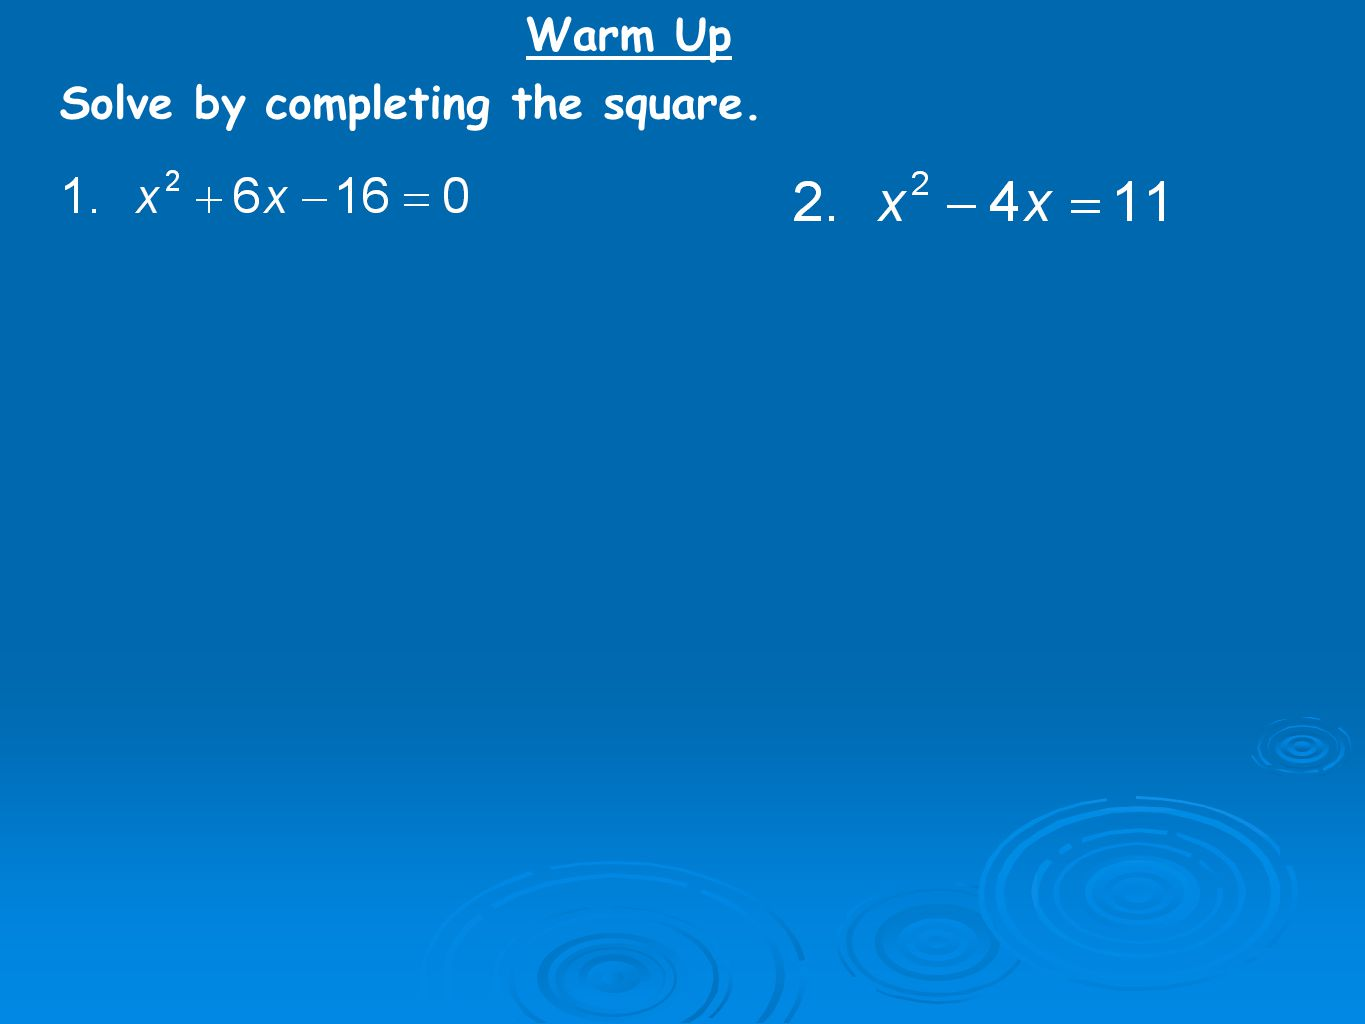 Solve by completing the square. Warm Up